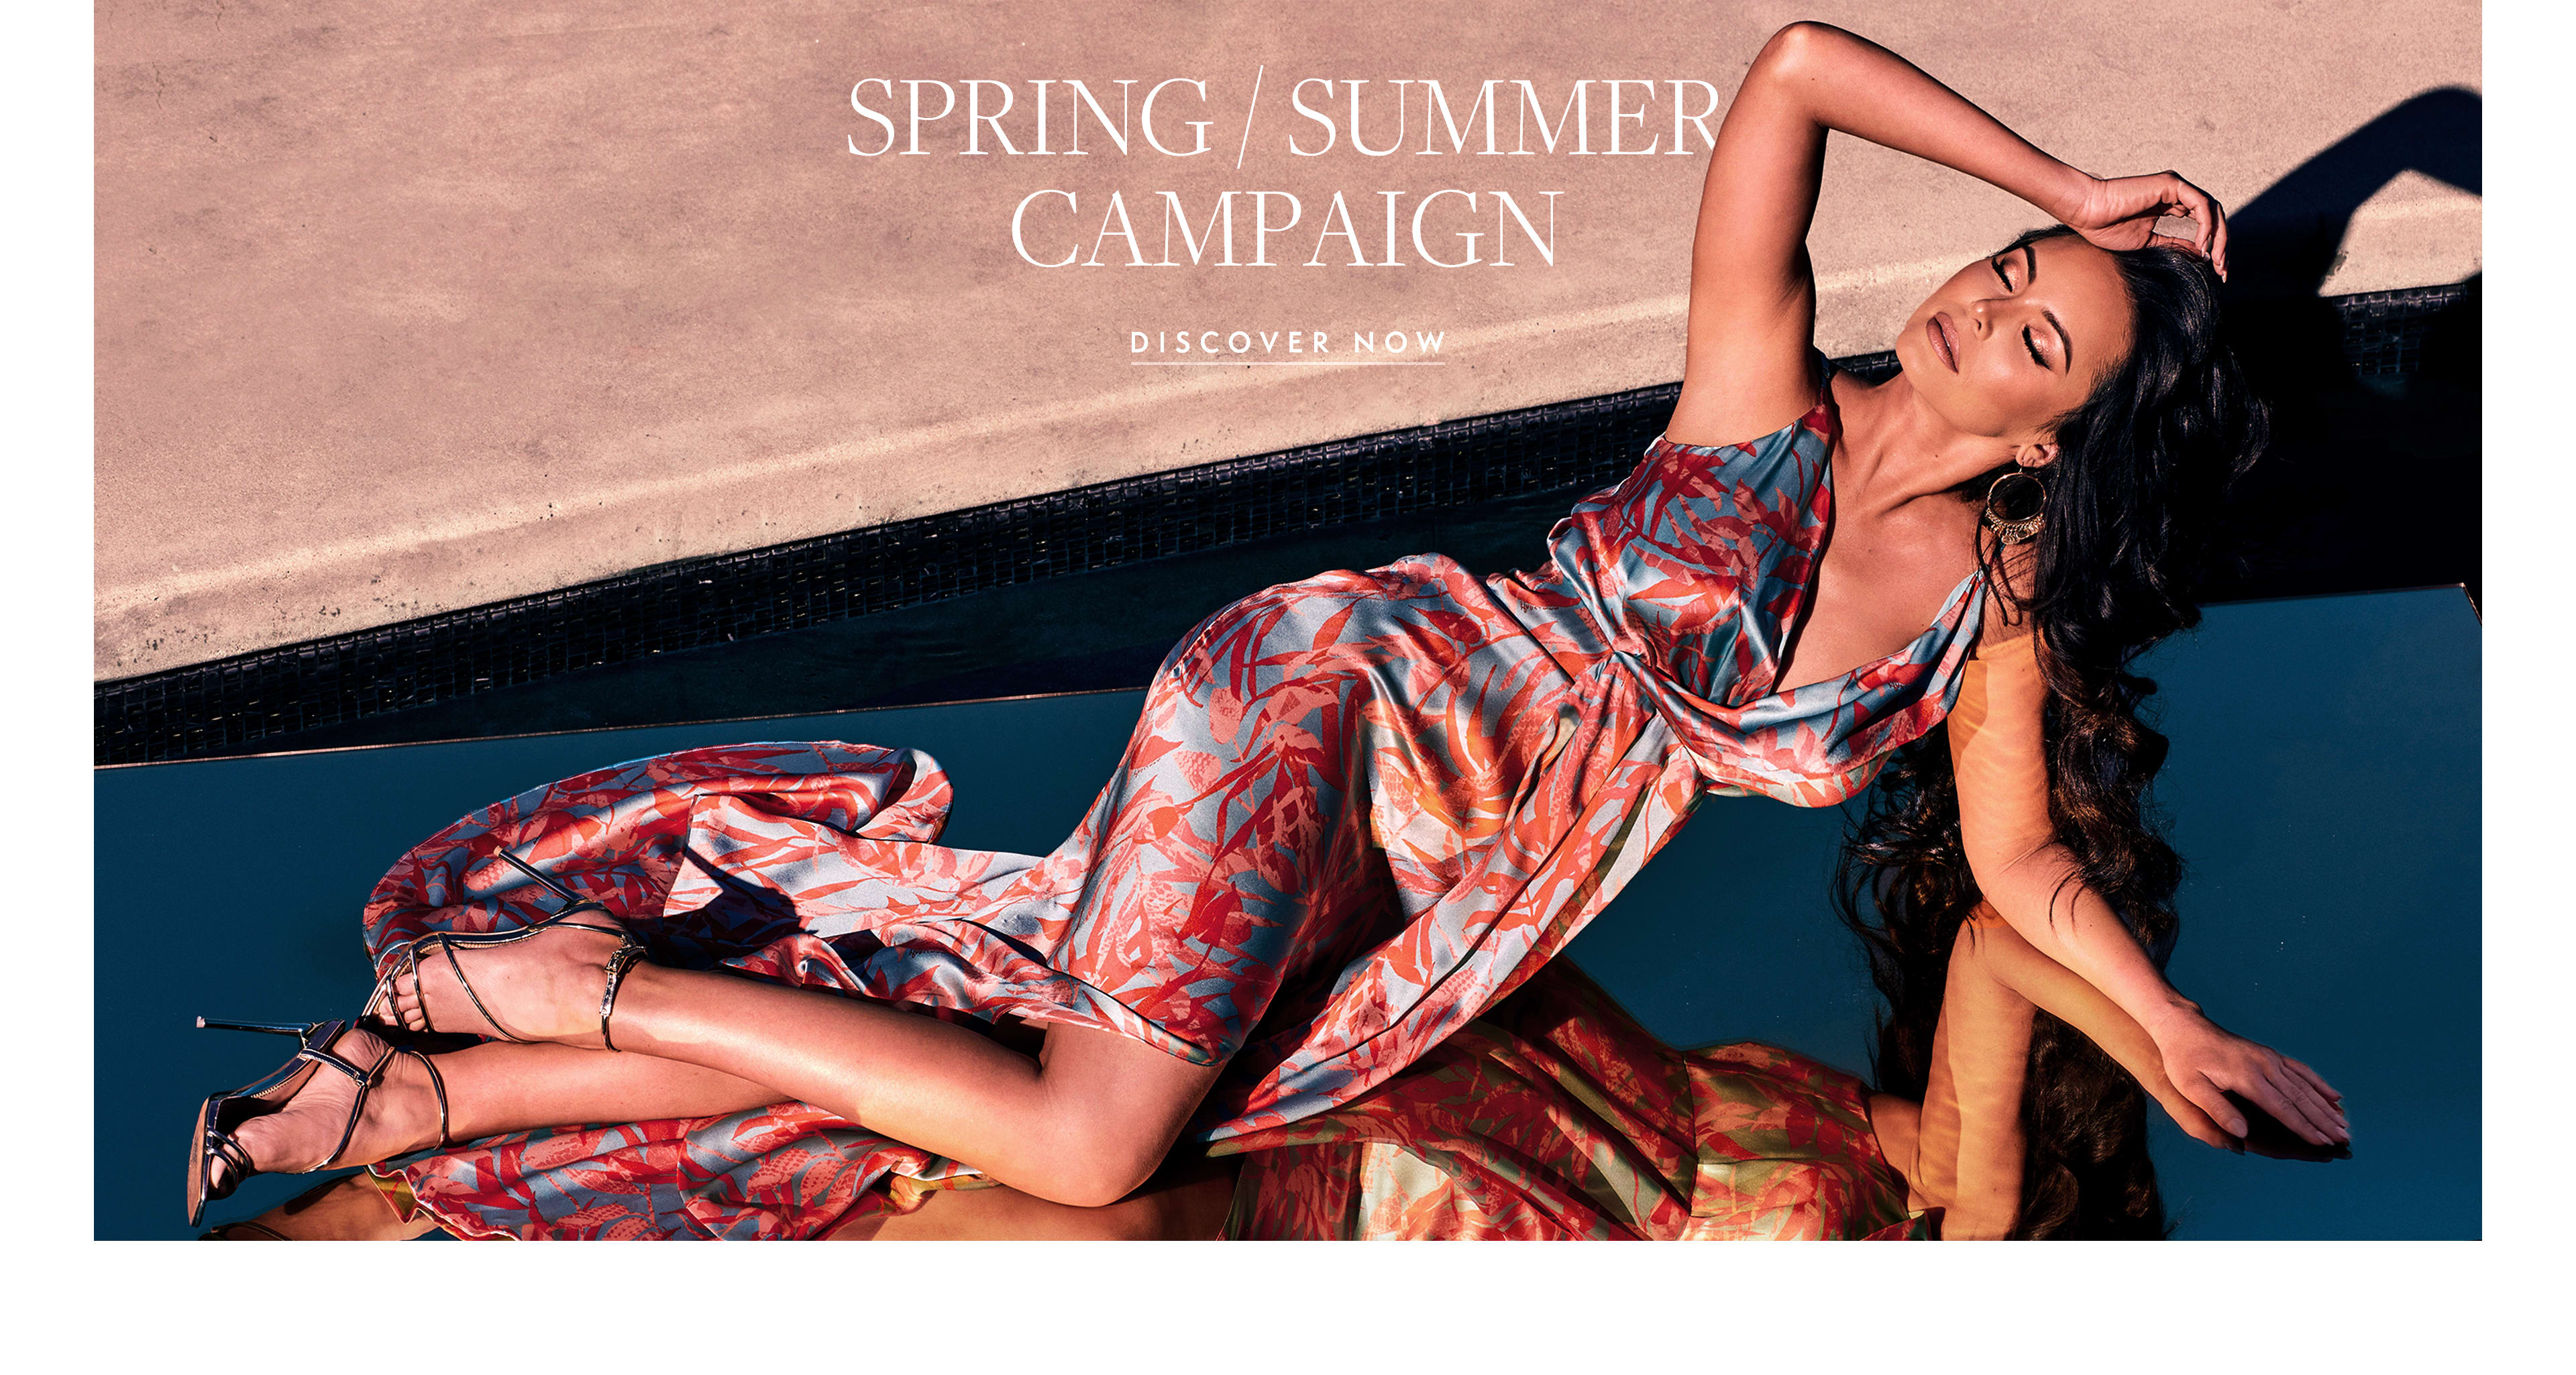 Spring/summer campaign